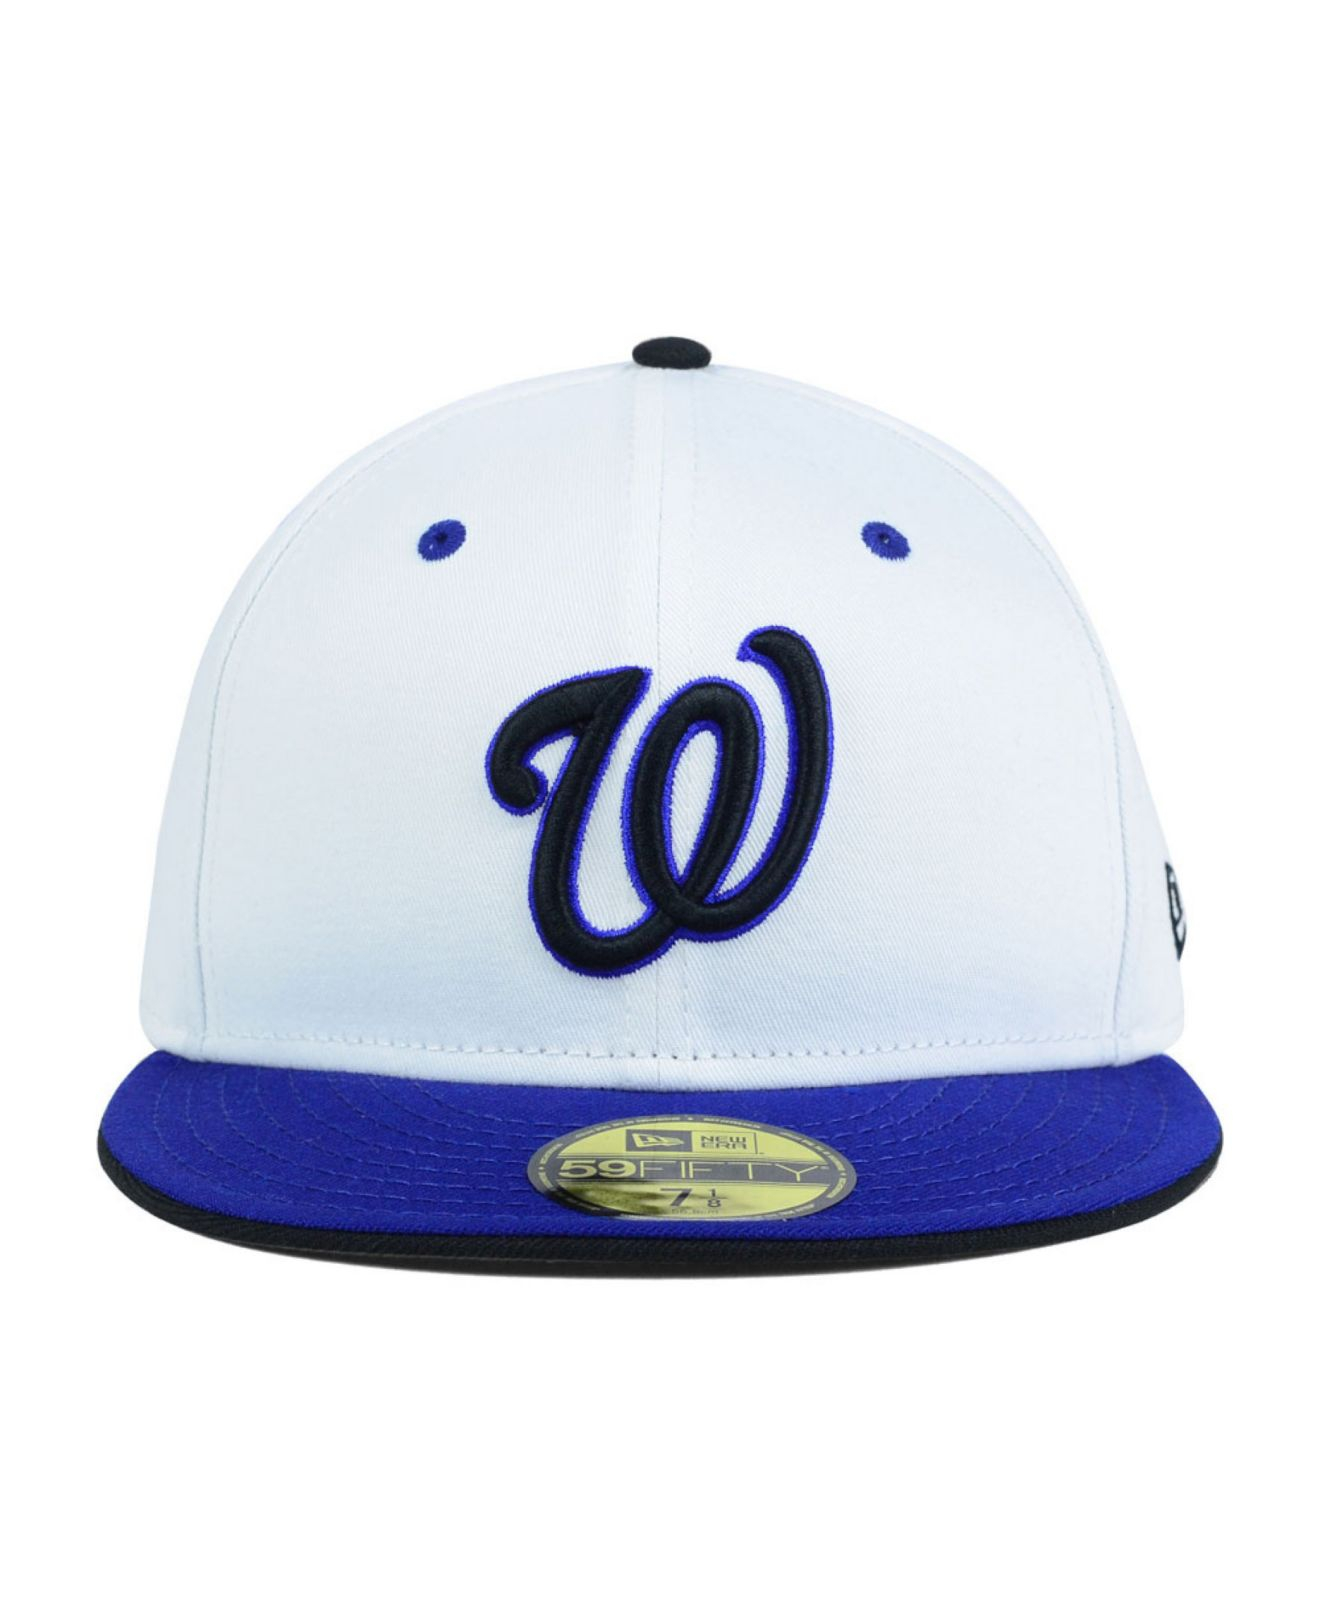 check out 0aff0 ceb67 ... coupon lyst ktz washington nationals mlb august hookups 59fifty cap in  white for men 51fde 8d4df